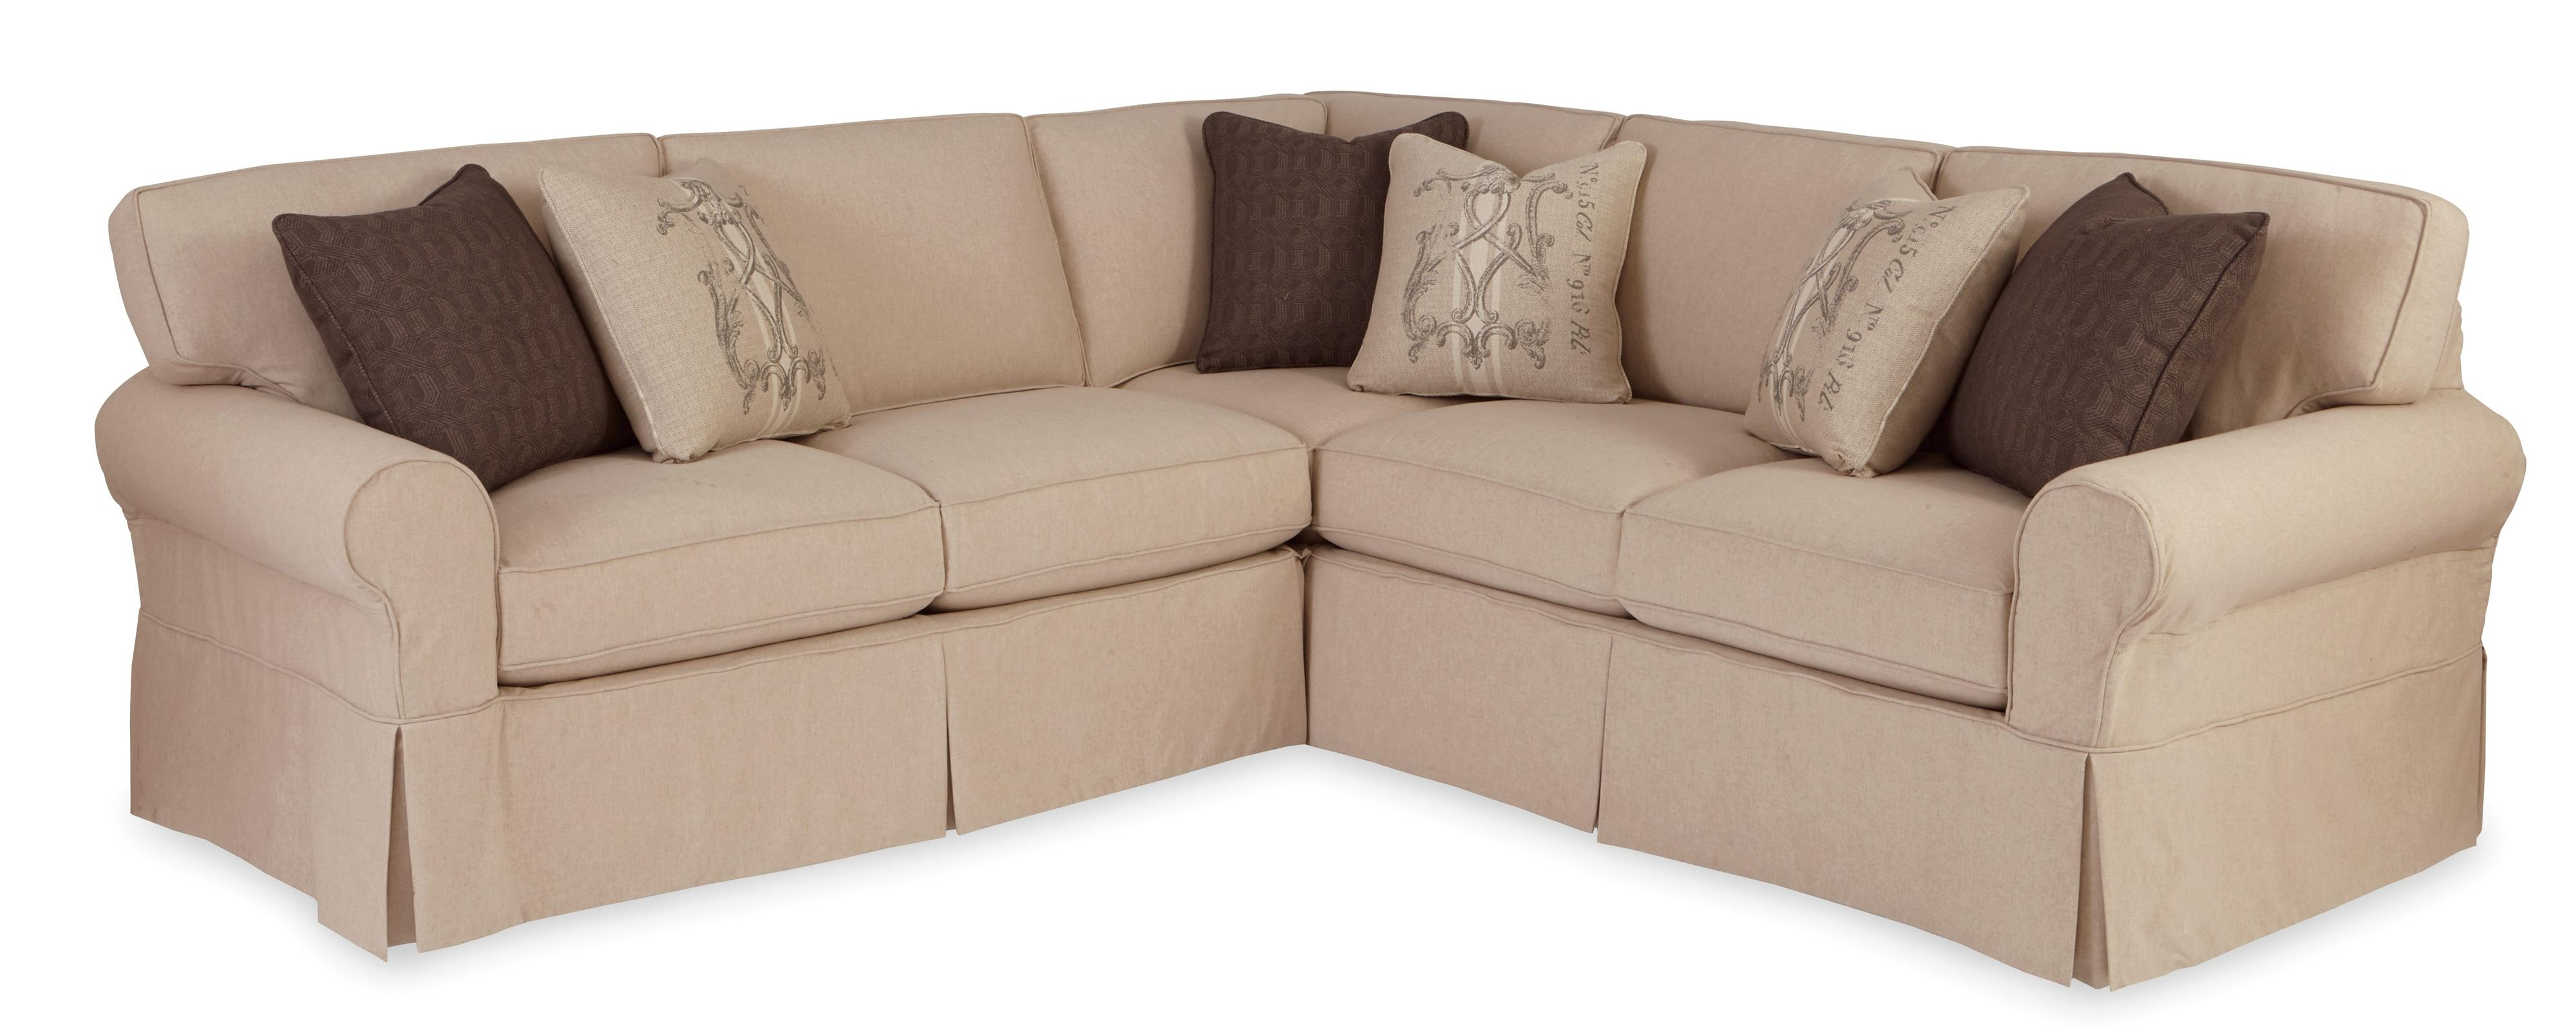 Sofas Center Sectional Diy Slipcover For Sofa With Chaisedys With Regard To Craftsman Sectional Sofa (#12 of 12)